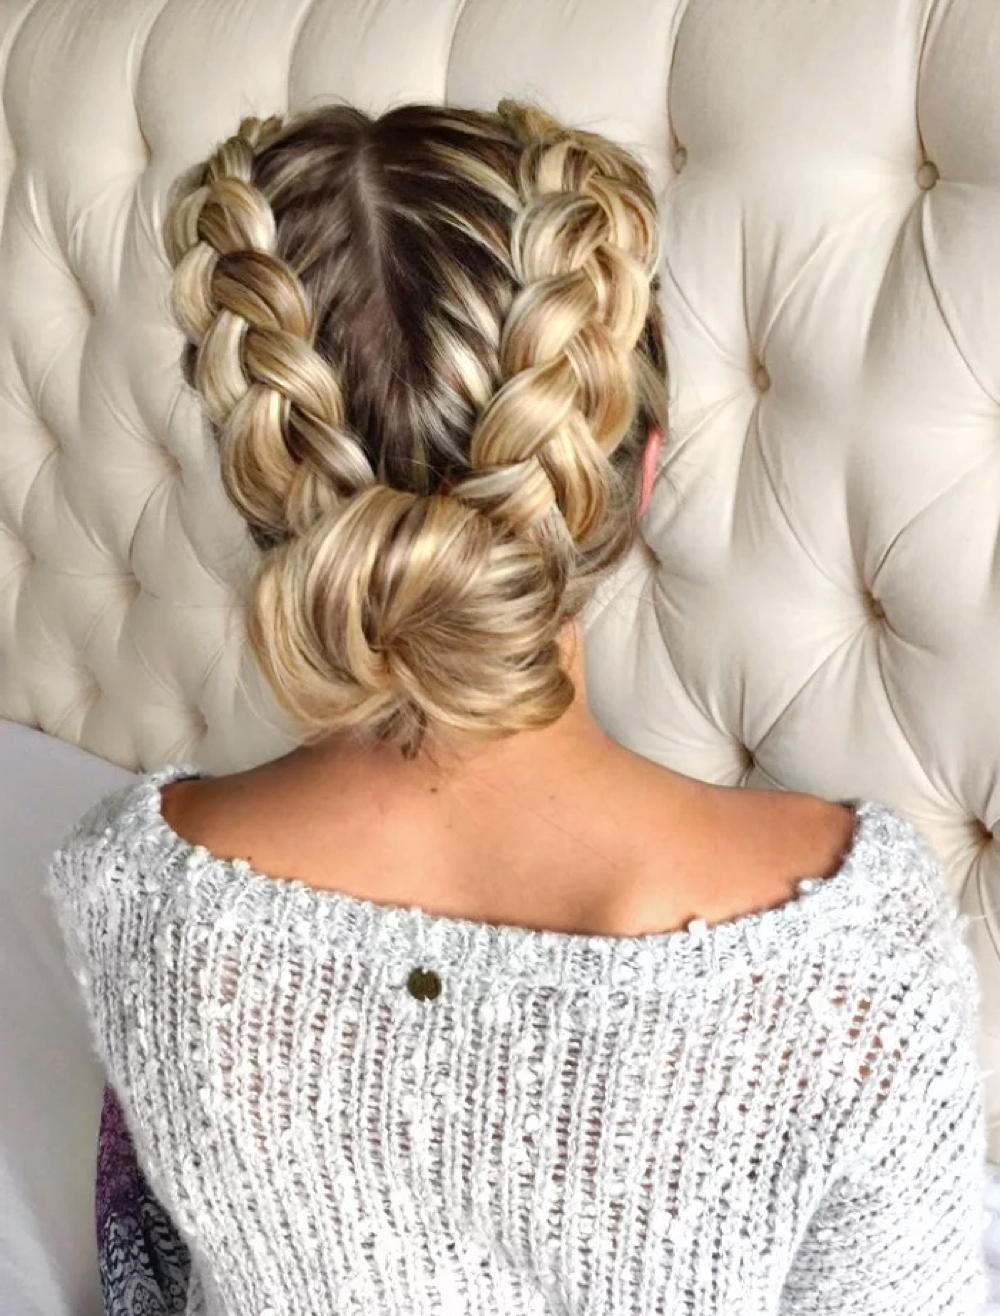 Famous Updo Hairstyles With 2 Strand Braid And Curls Throughout 29 Gorgeous Braided Updo Ideas For  (View 8 of 20)